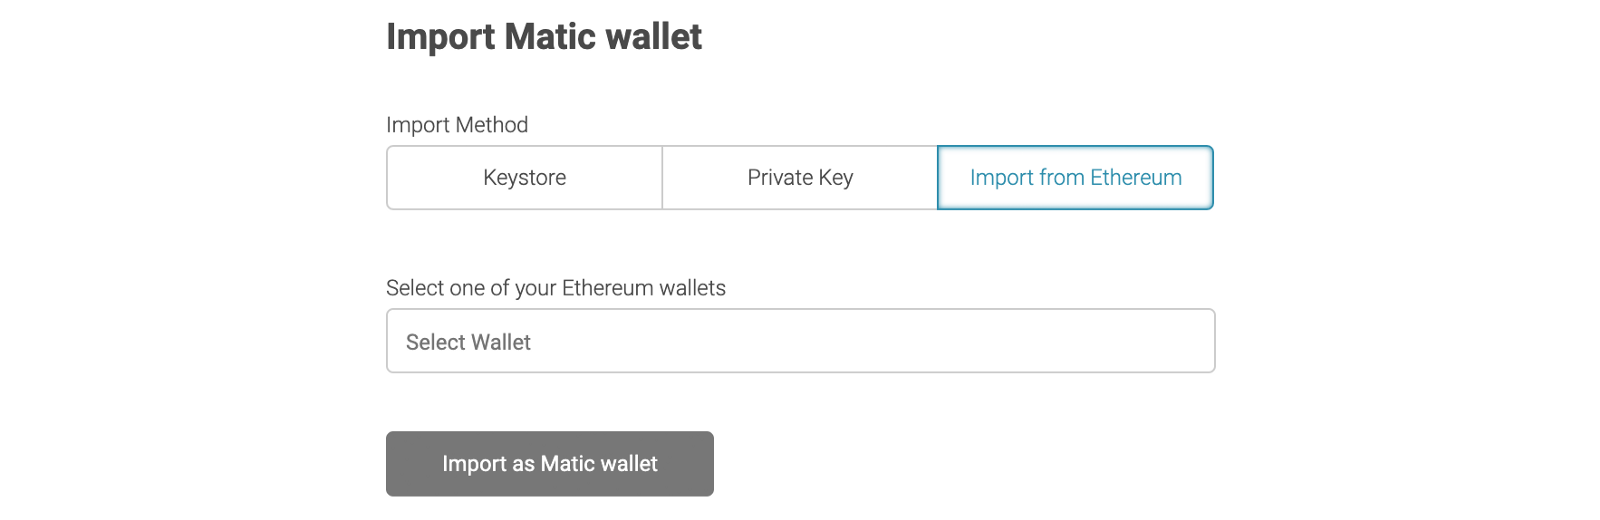 Import an Ethereum wallet into Matic